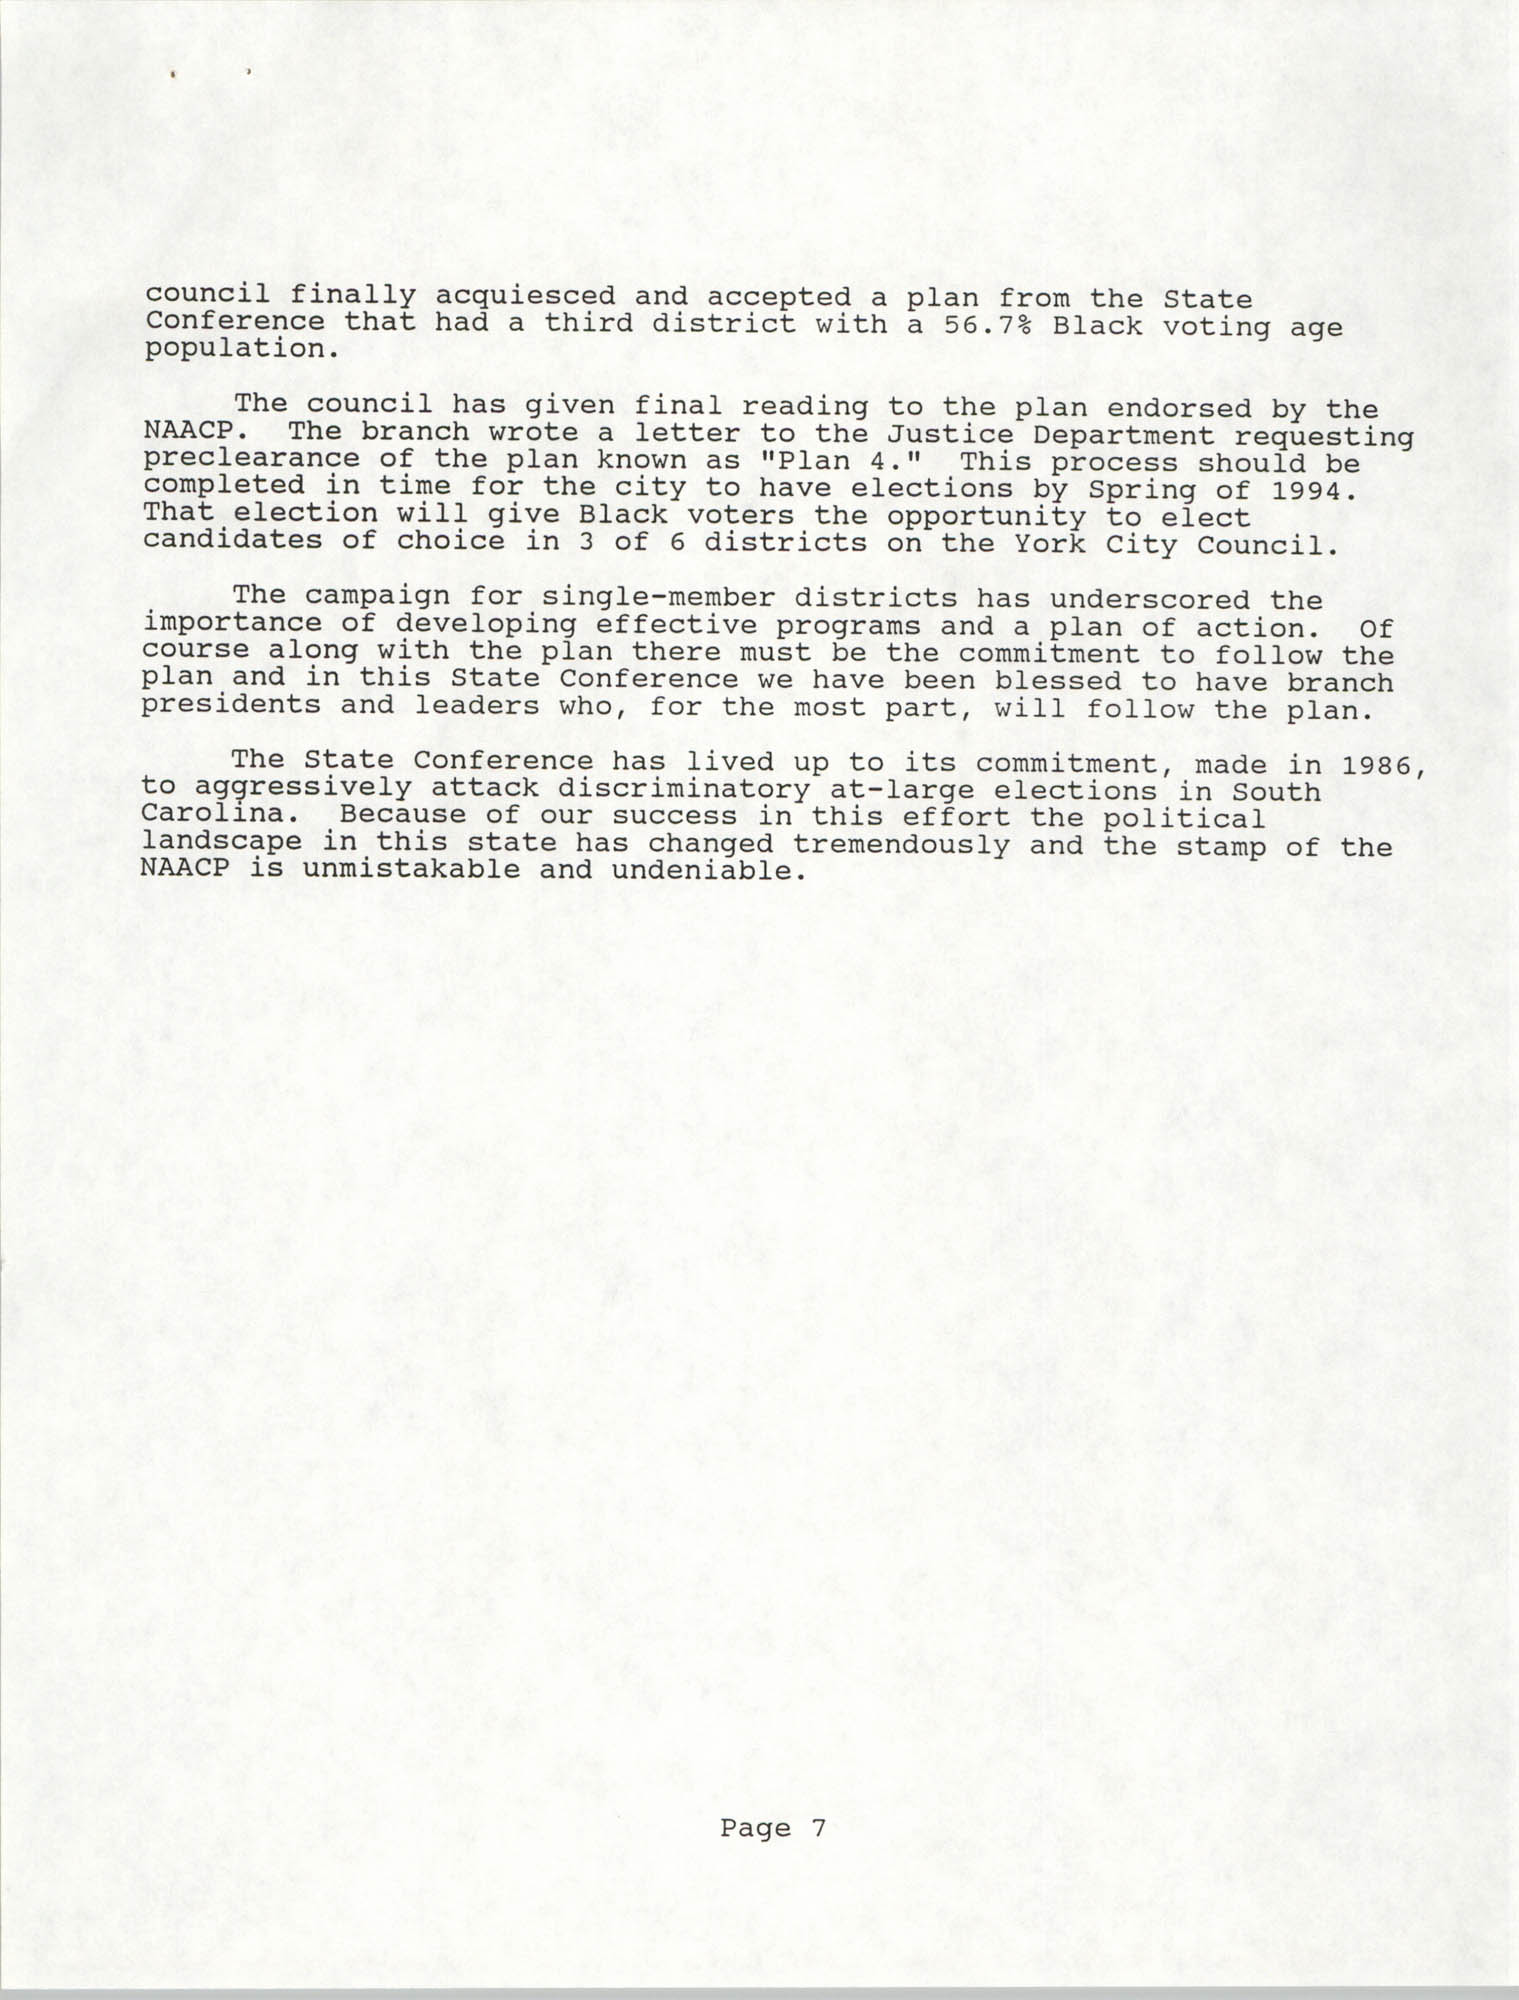 South Carolina Conference of Branches of the NAACP, Annual Report, October 9, 1993, Page 7